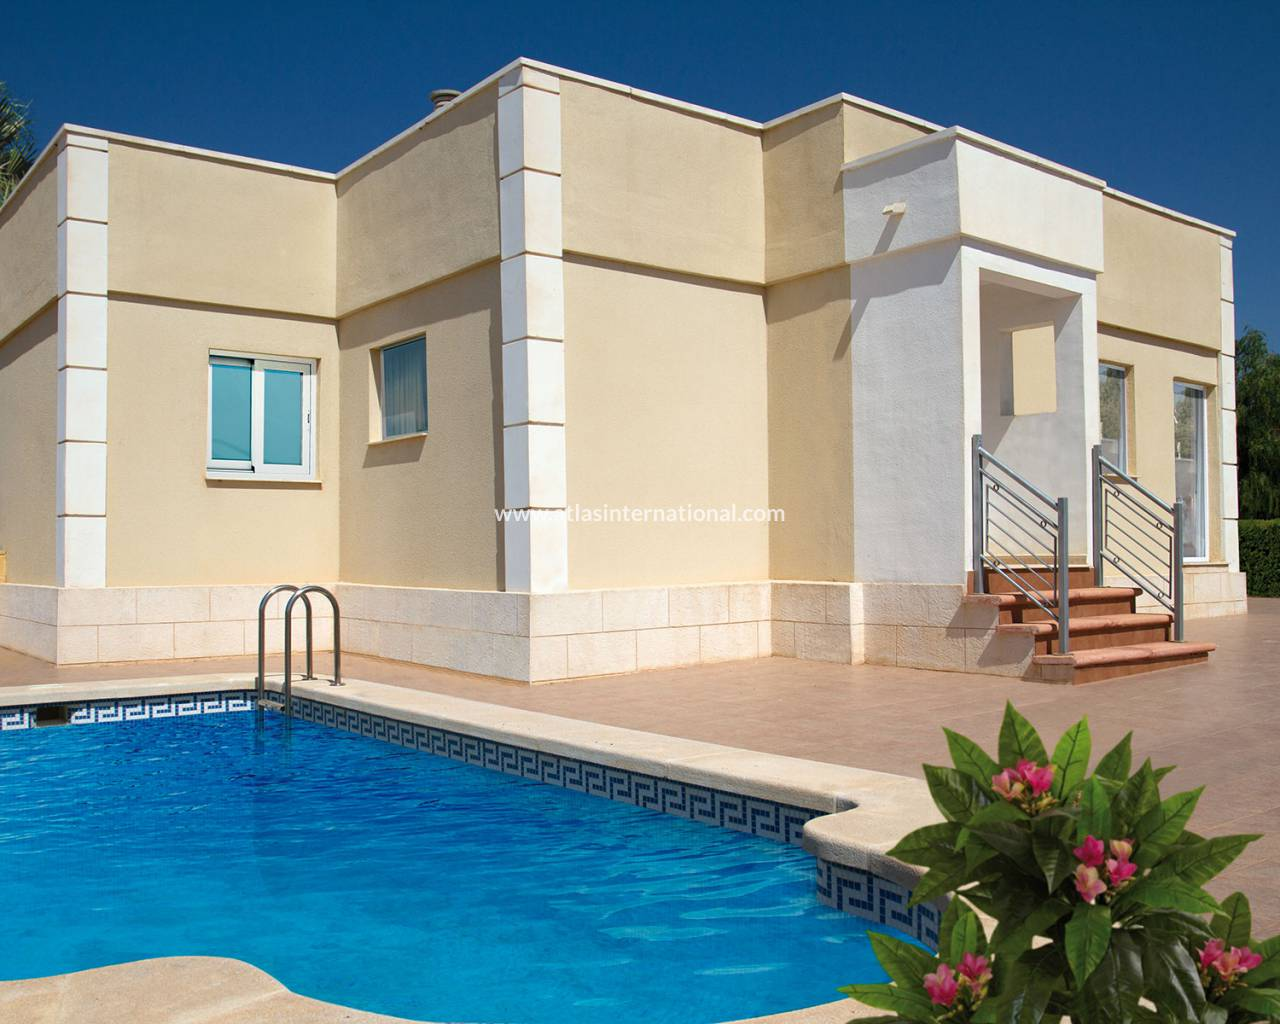 Semi-Detached Villa - New Build - Balsicas - Balsicas